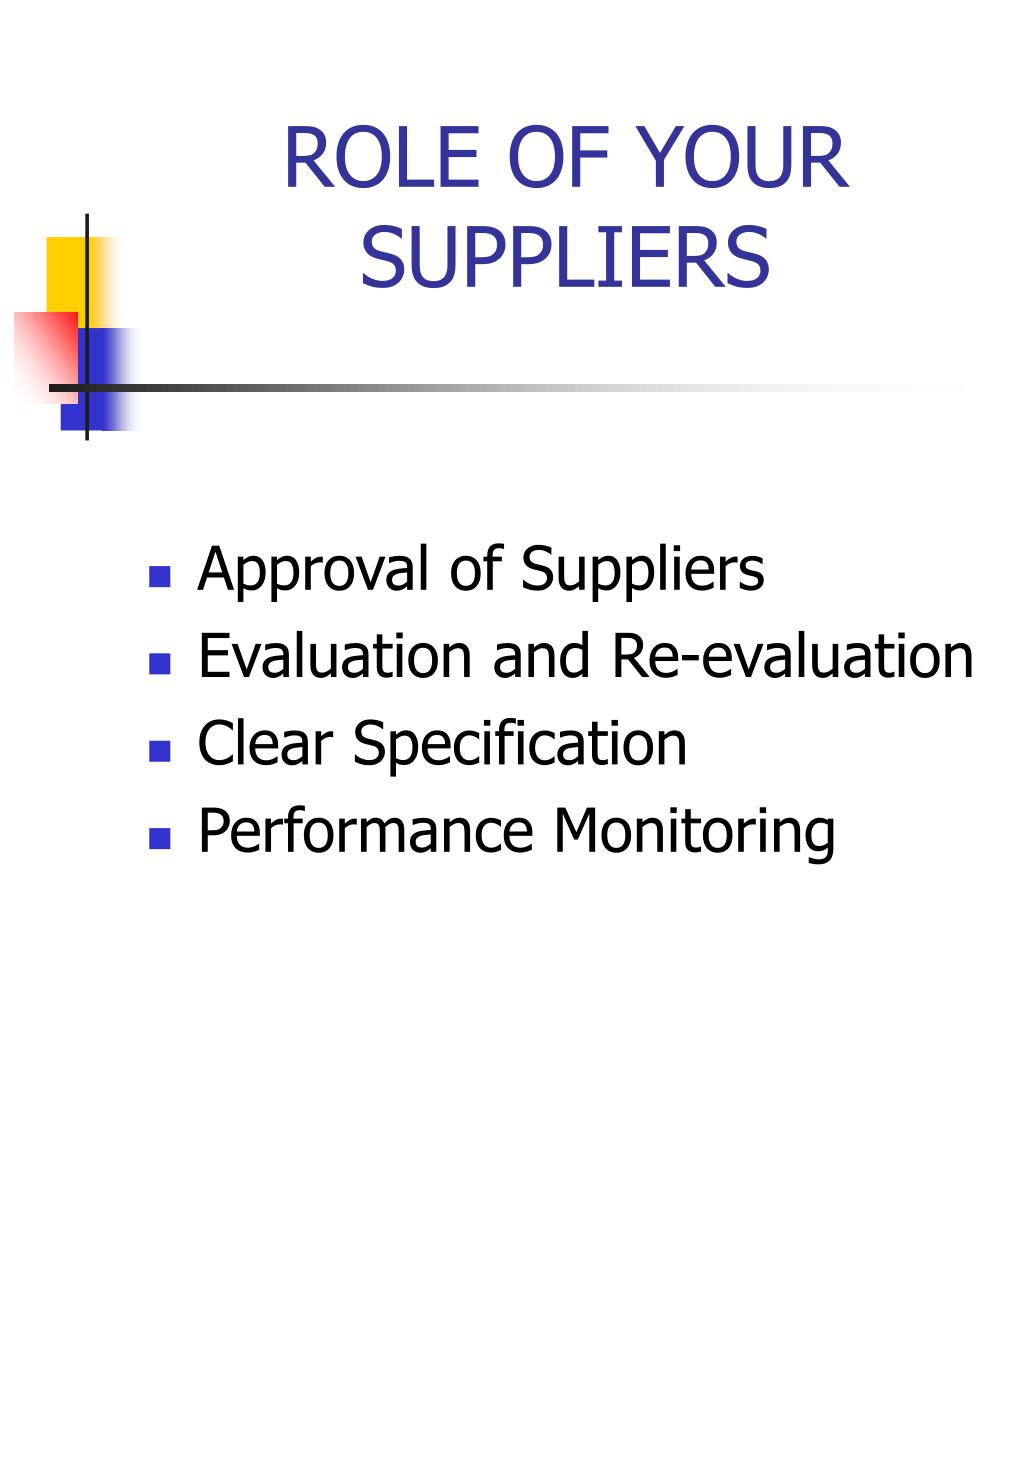 ROLE OF YOUR SUPPLIERS